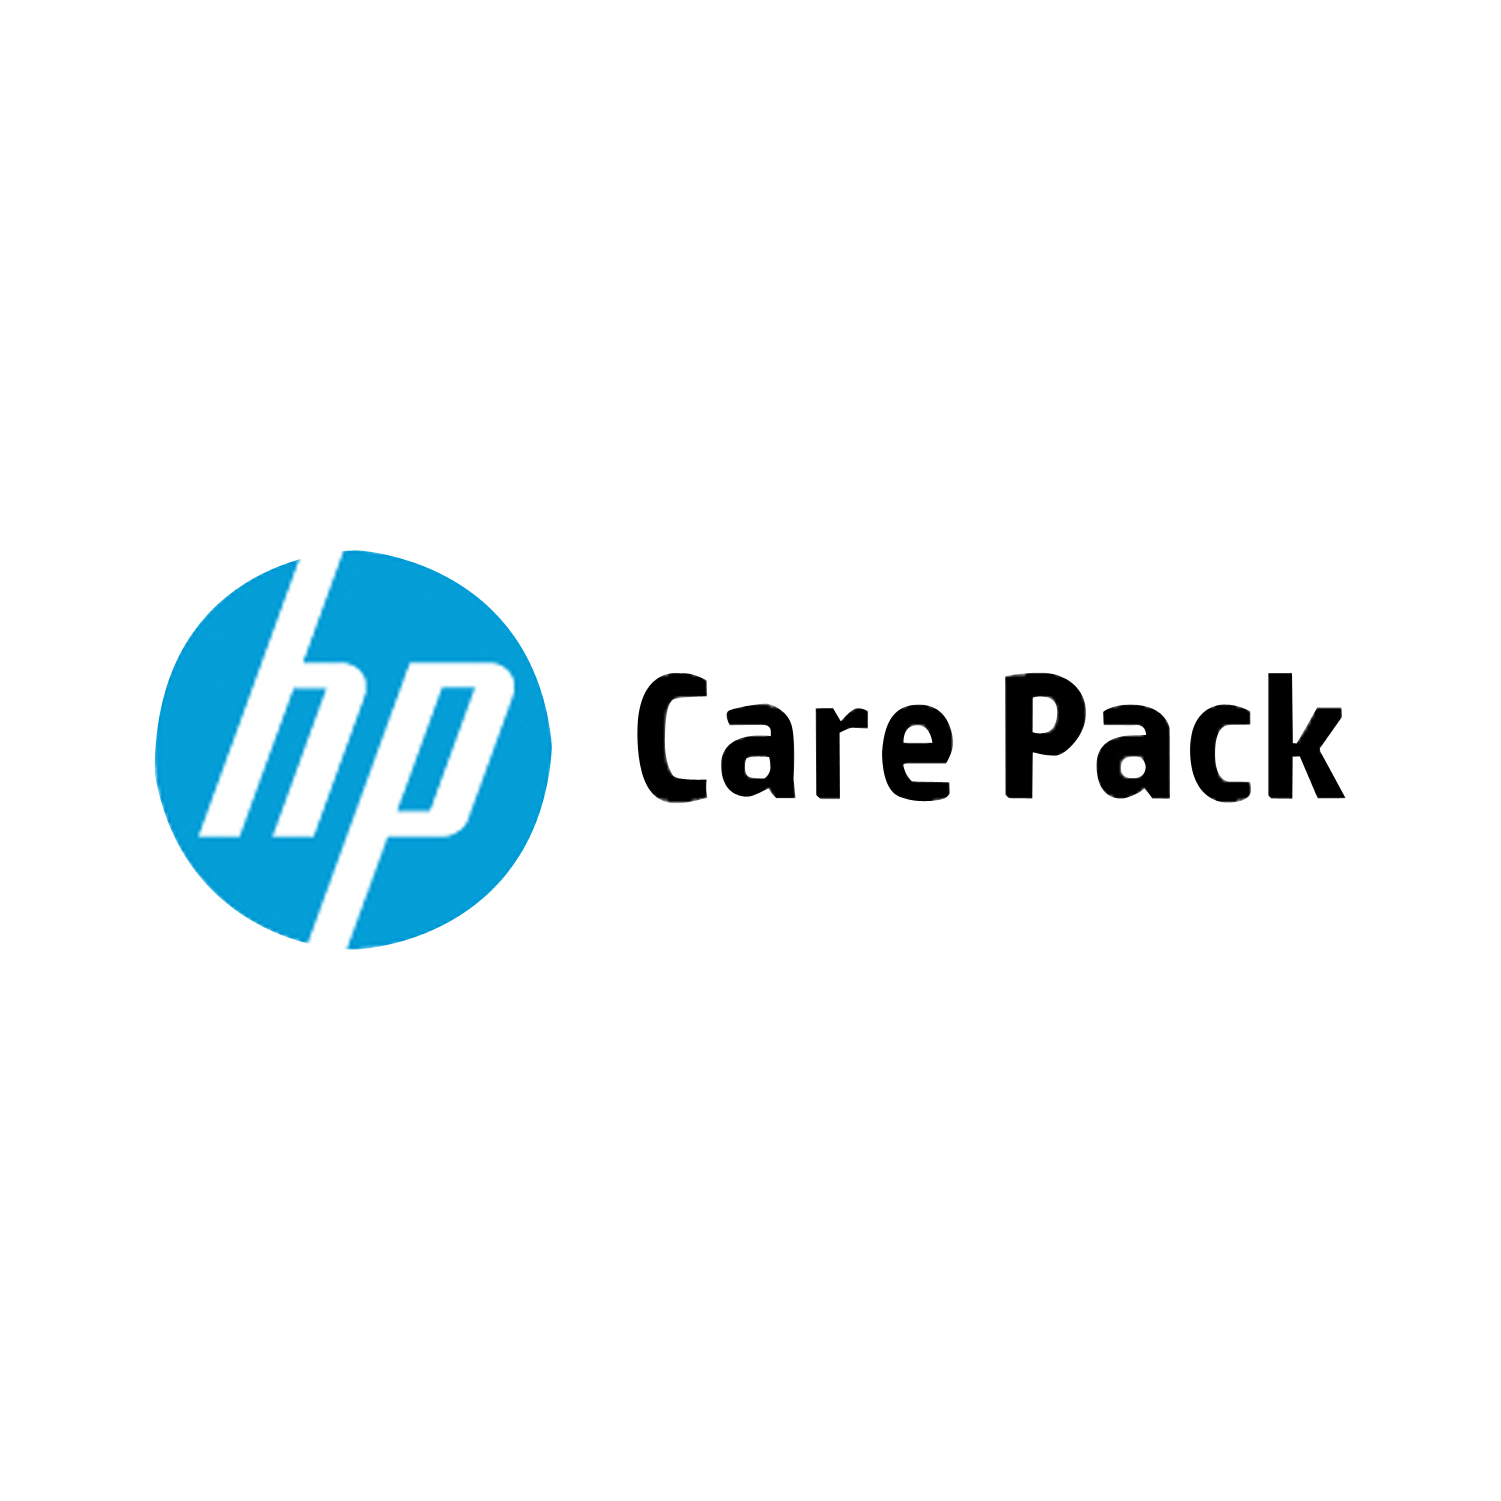 Electronic HP Care Pack Next Business Day Hardware Support - Extended Service Agreement - Parts And Labour - 5 Years - On-site - 9x5 - Response Time: NBD - For LaserJet Pro M402d, M402dn, M40 - C2000